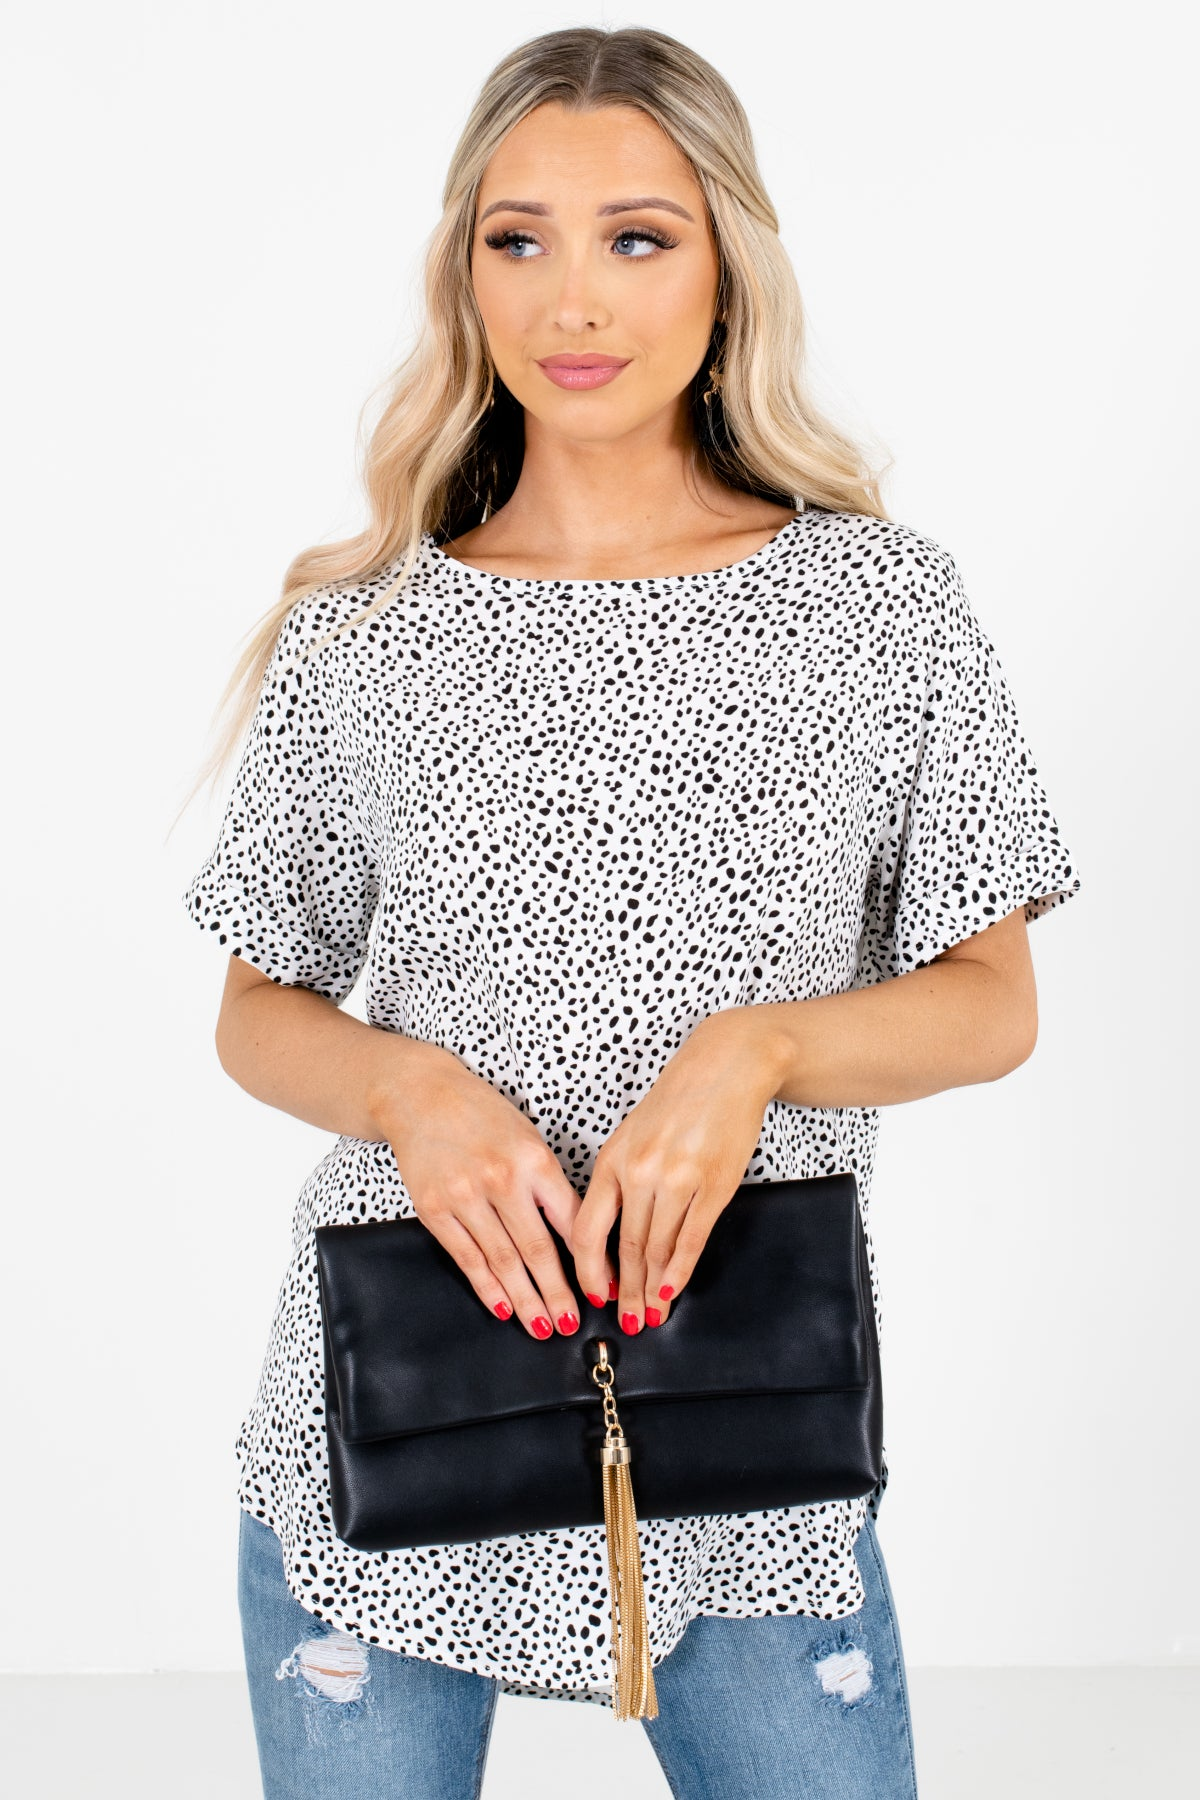 White Abstract Polka Dot Patterned Boutique Blouses for Women